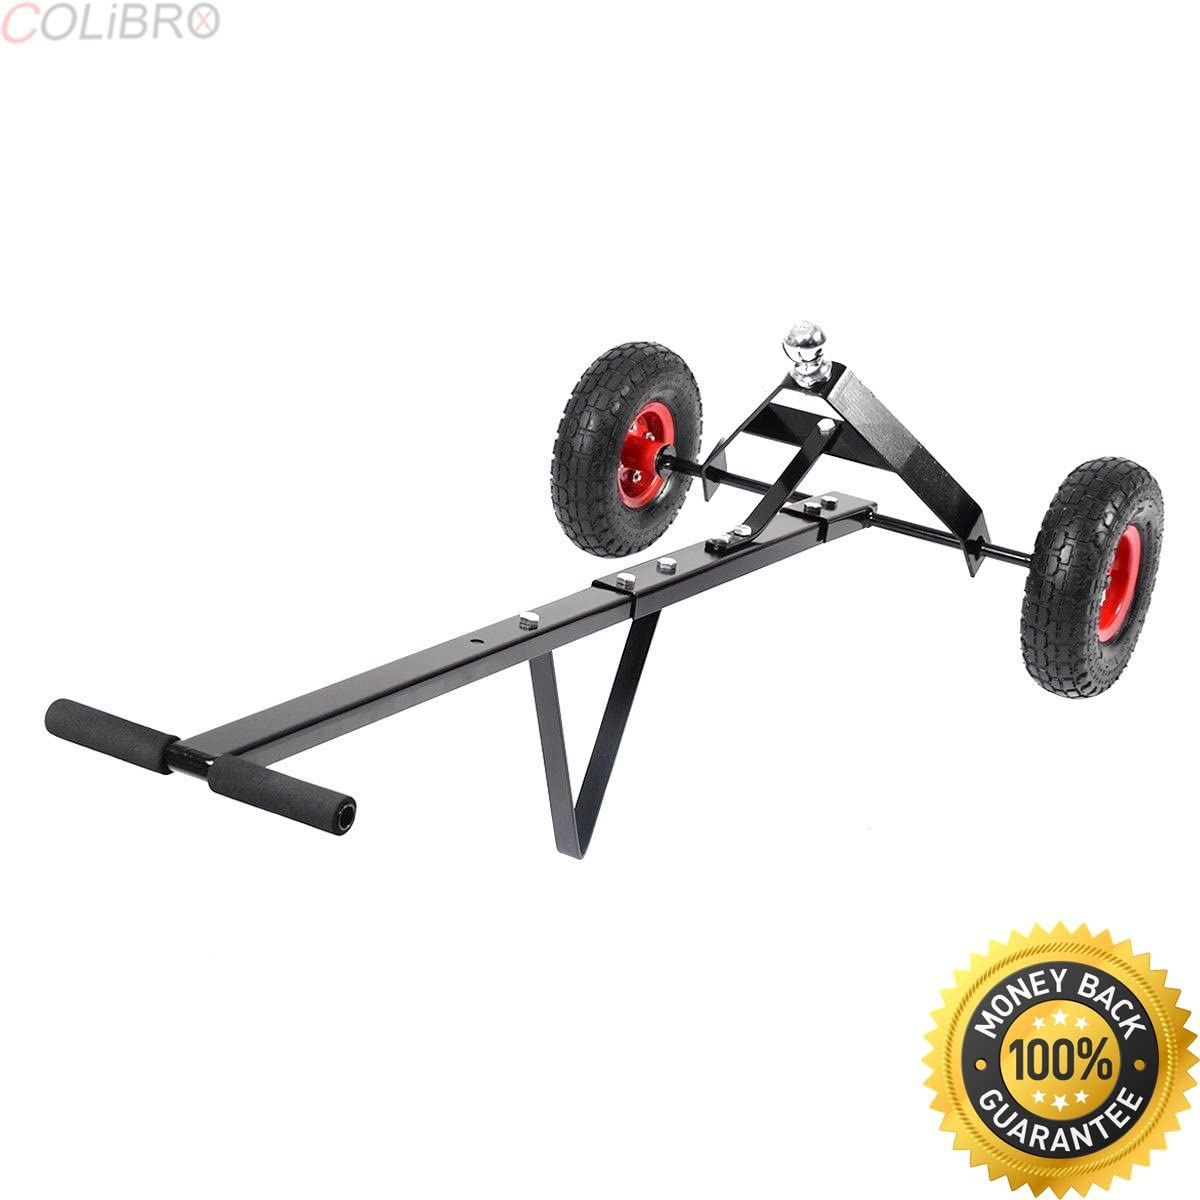 Colibrox 600lb Heavy Duty Utility Trailer Mover Hitch Boat Jet Ski Camper Hand Dolly New Heavy Duty Trailer Dolly Trailer Dolly Amazon Home Depot Trailer Dolly Trailer Trolley Amazon Ca Sports Outdoors